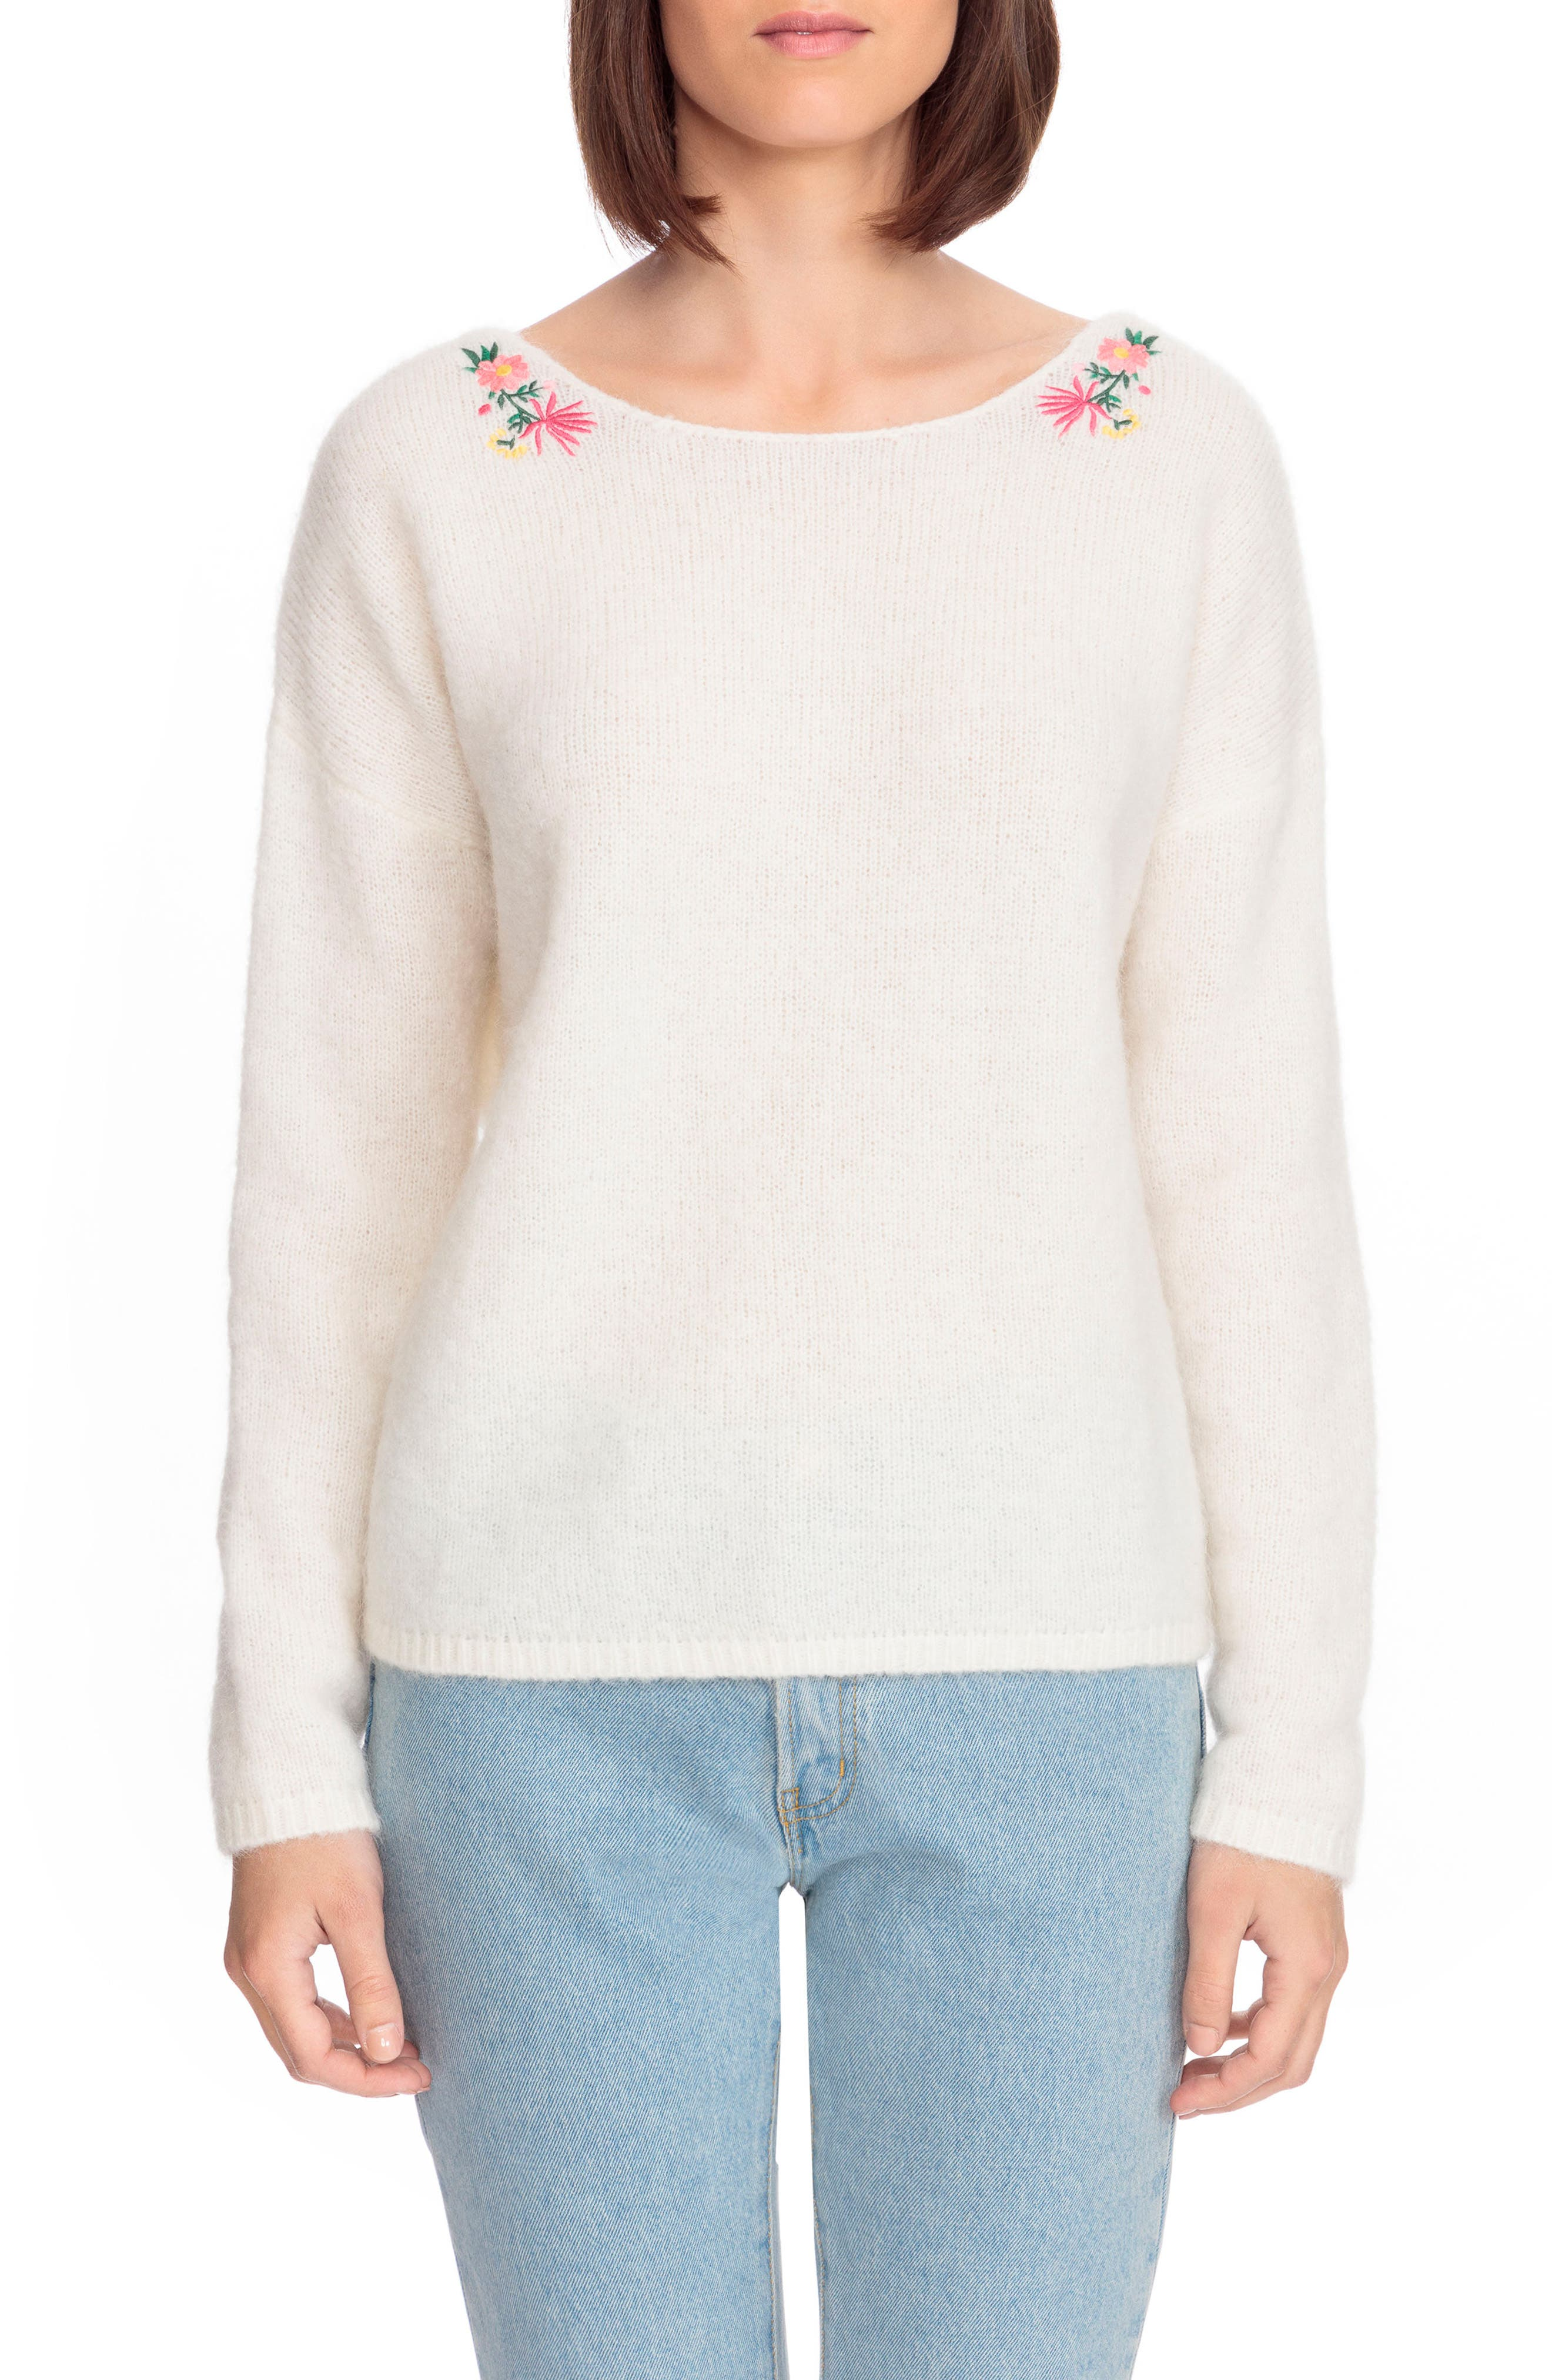 Cassiopee Embroidered Sweater,                         Main,                         color, 100